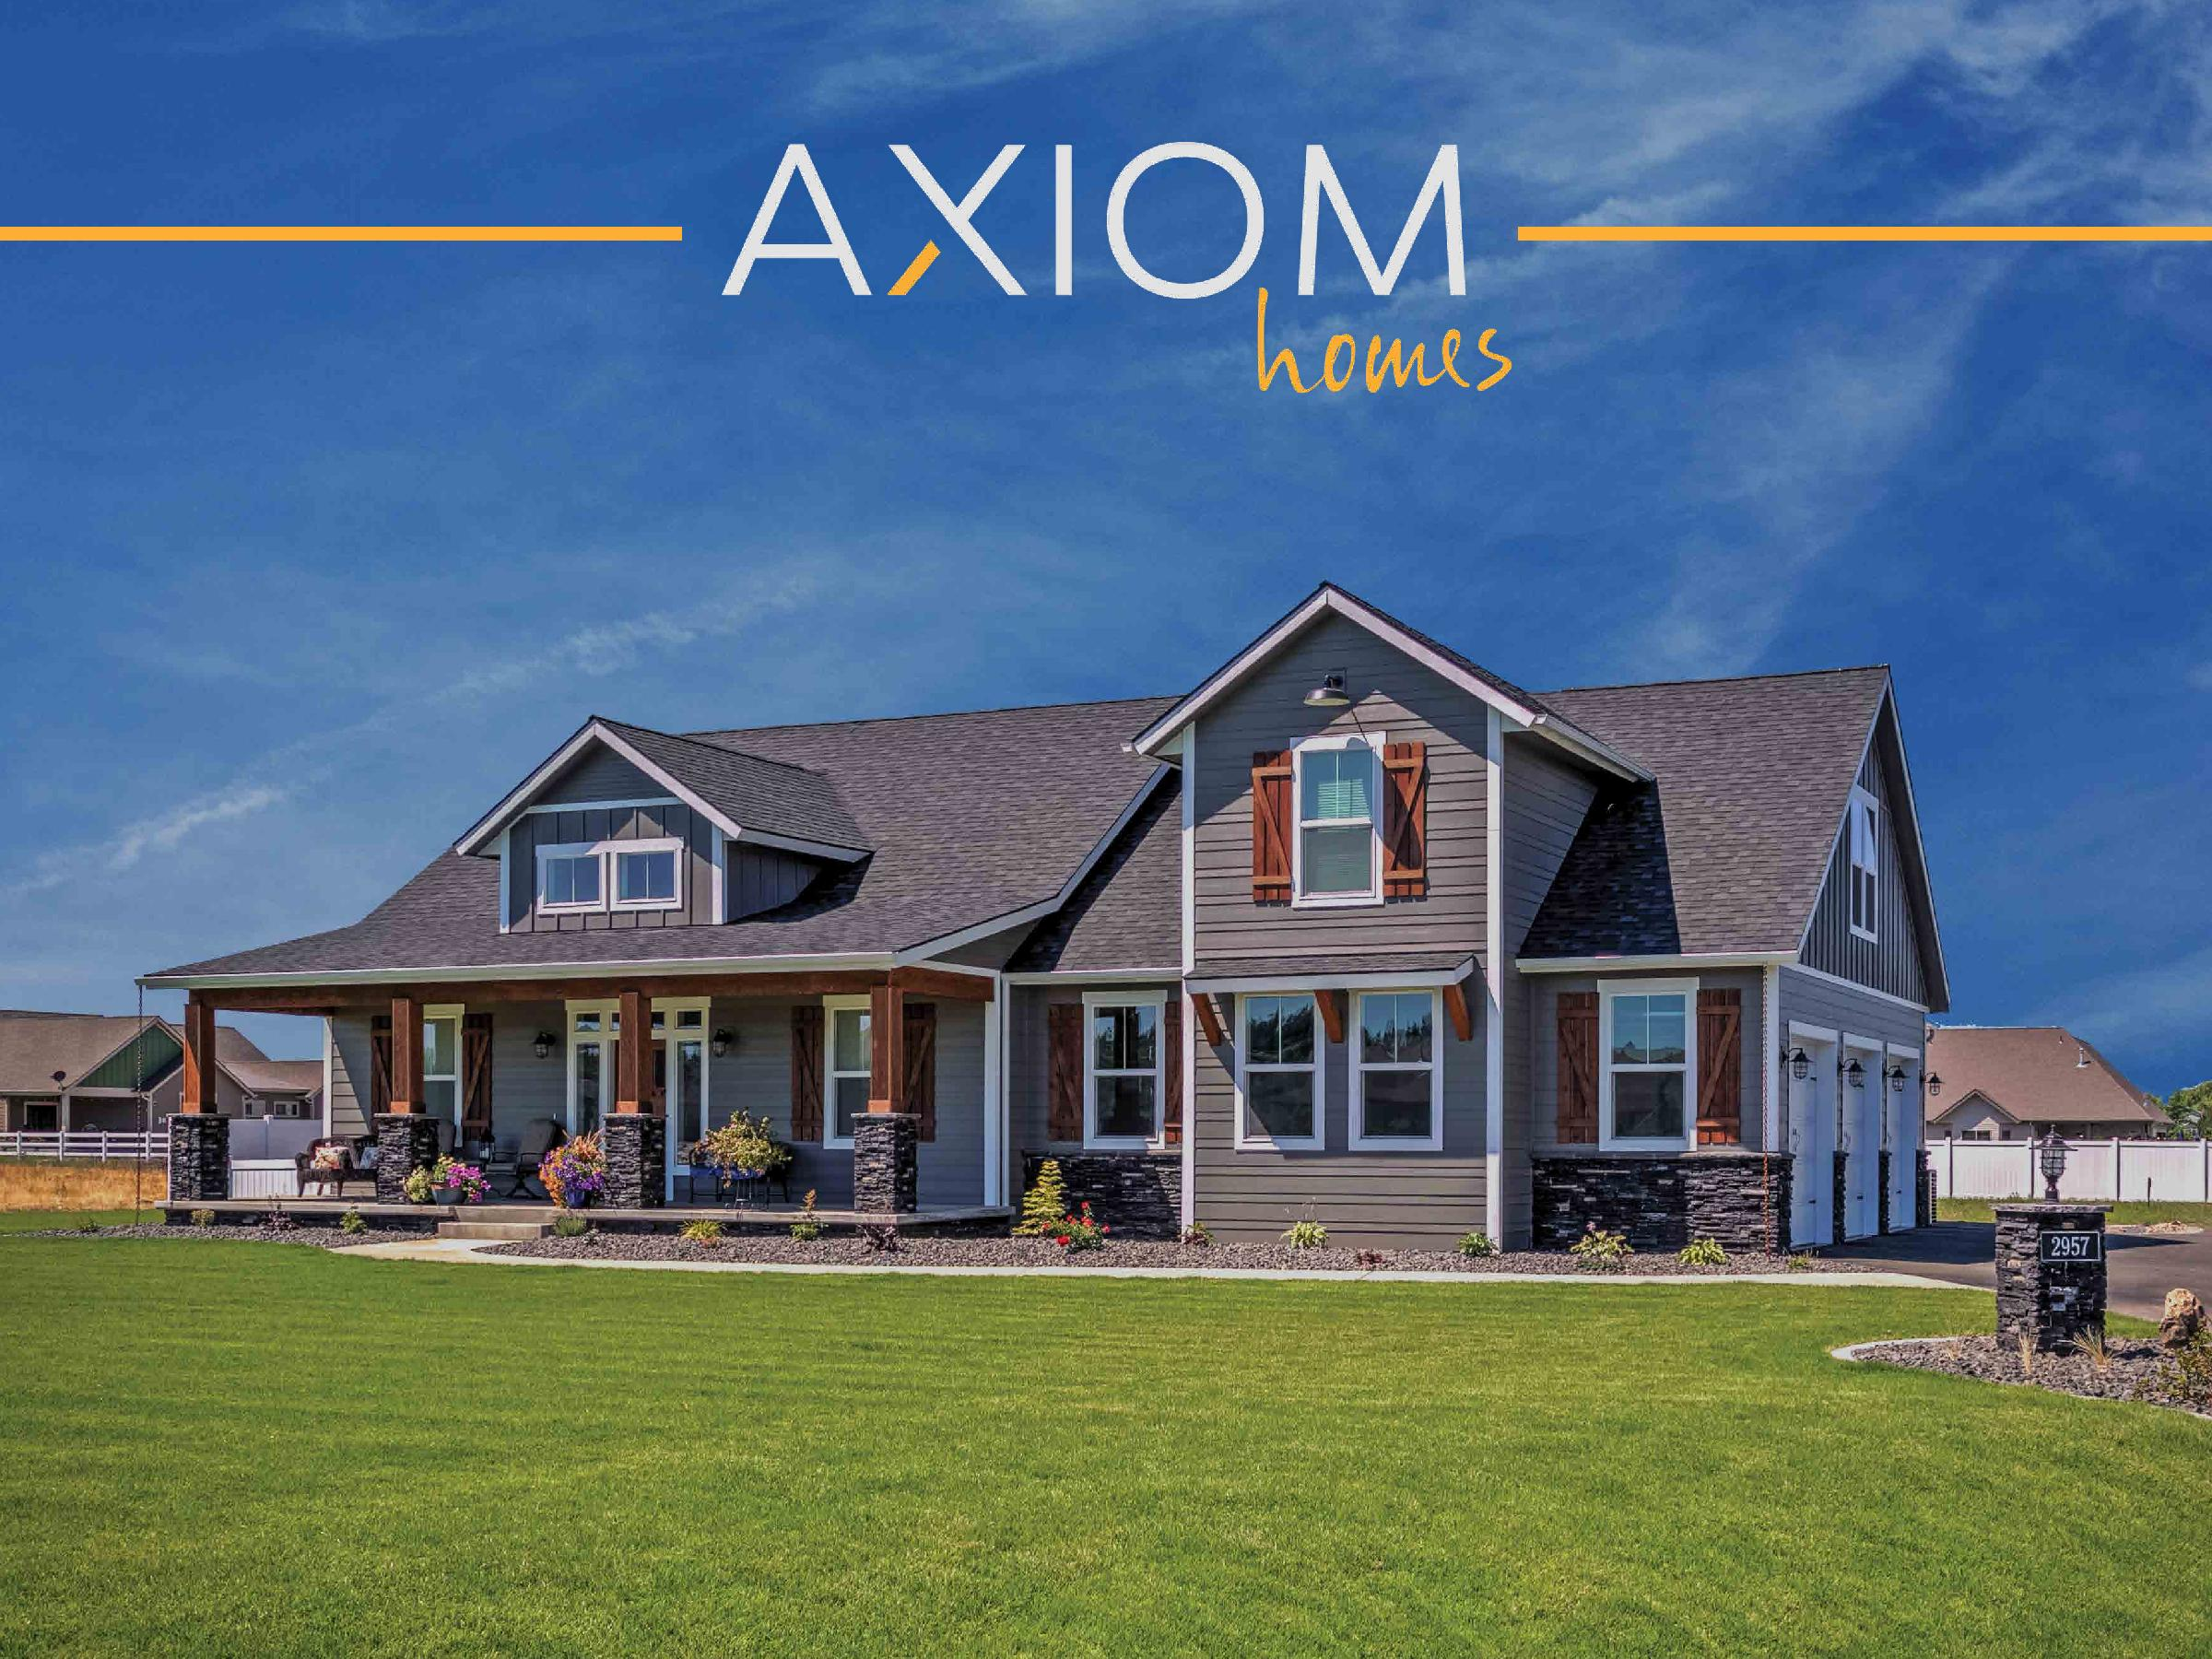 axiom-homes_digital-interactive_id_6.11.18_1.jpg